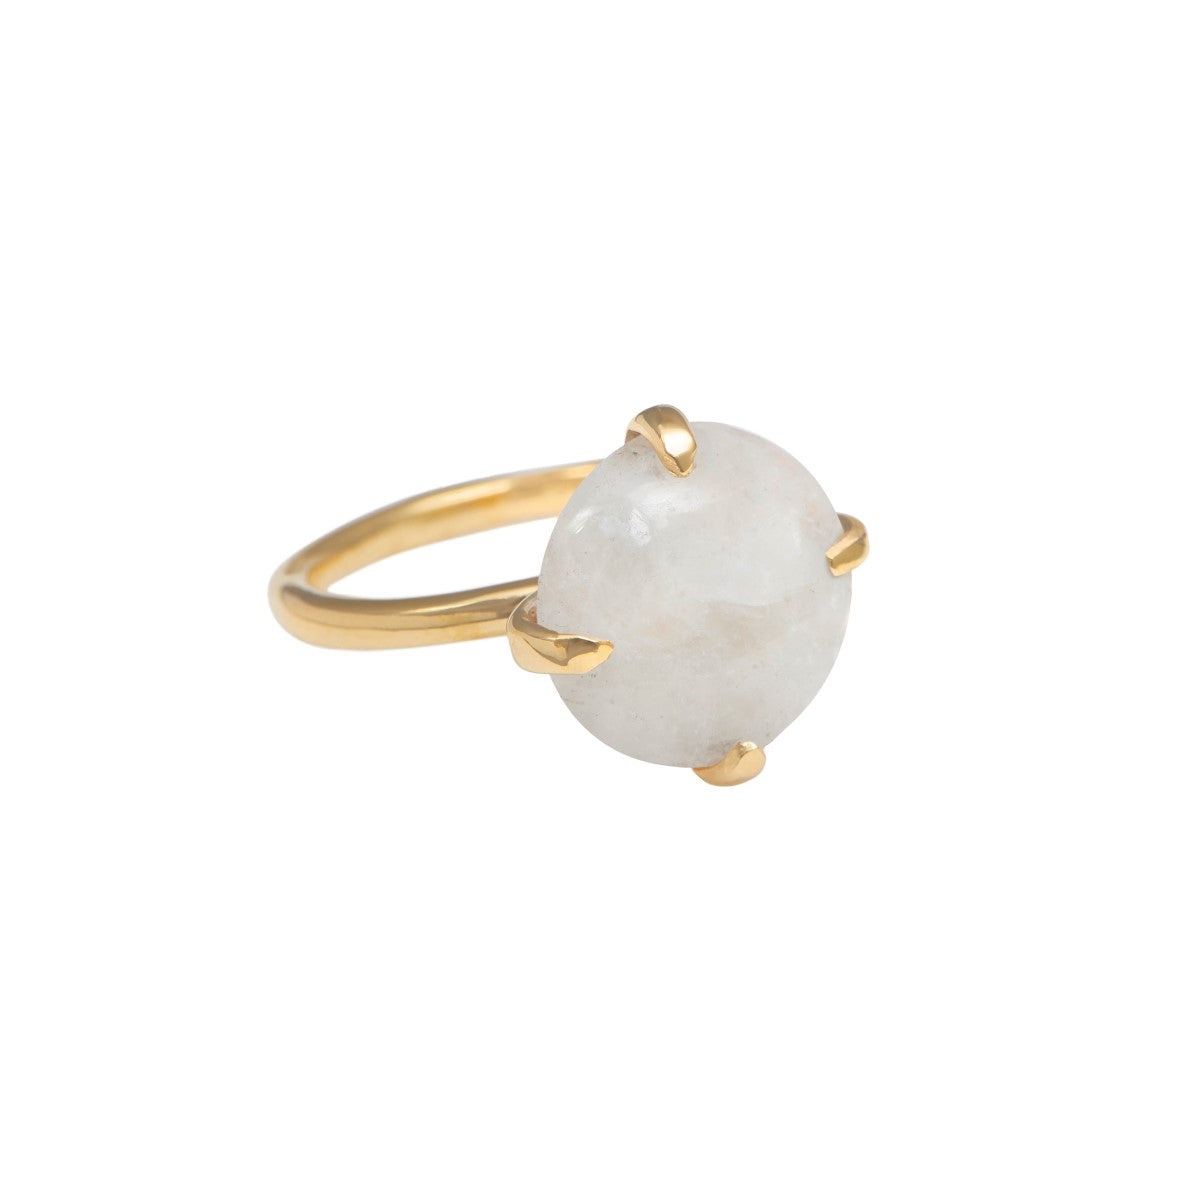 Round Cabochon Moonstone Ring in Gold Plated Sterling Silver